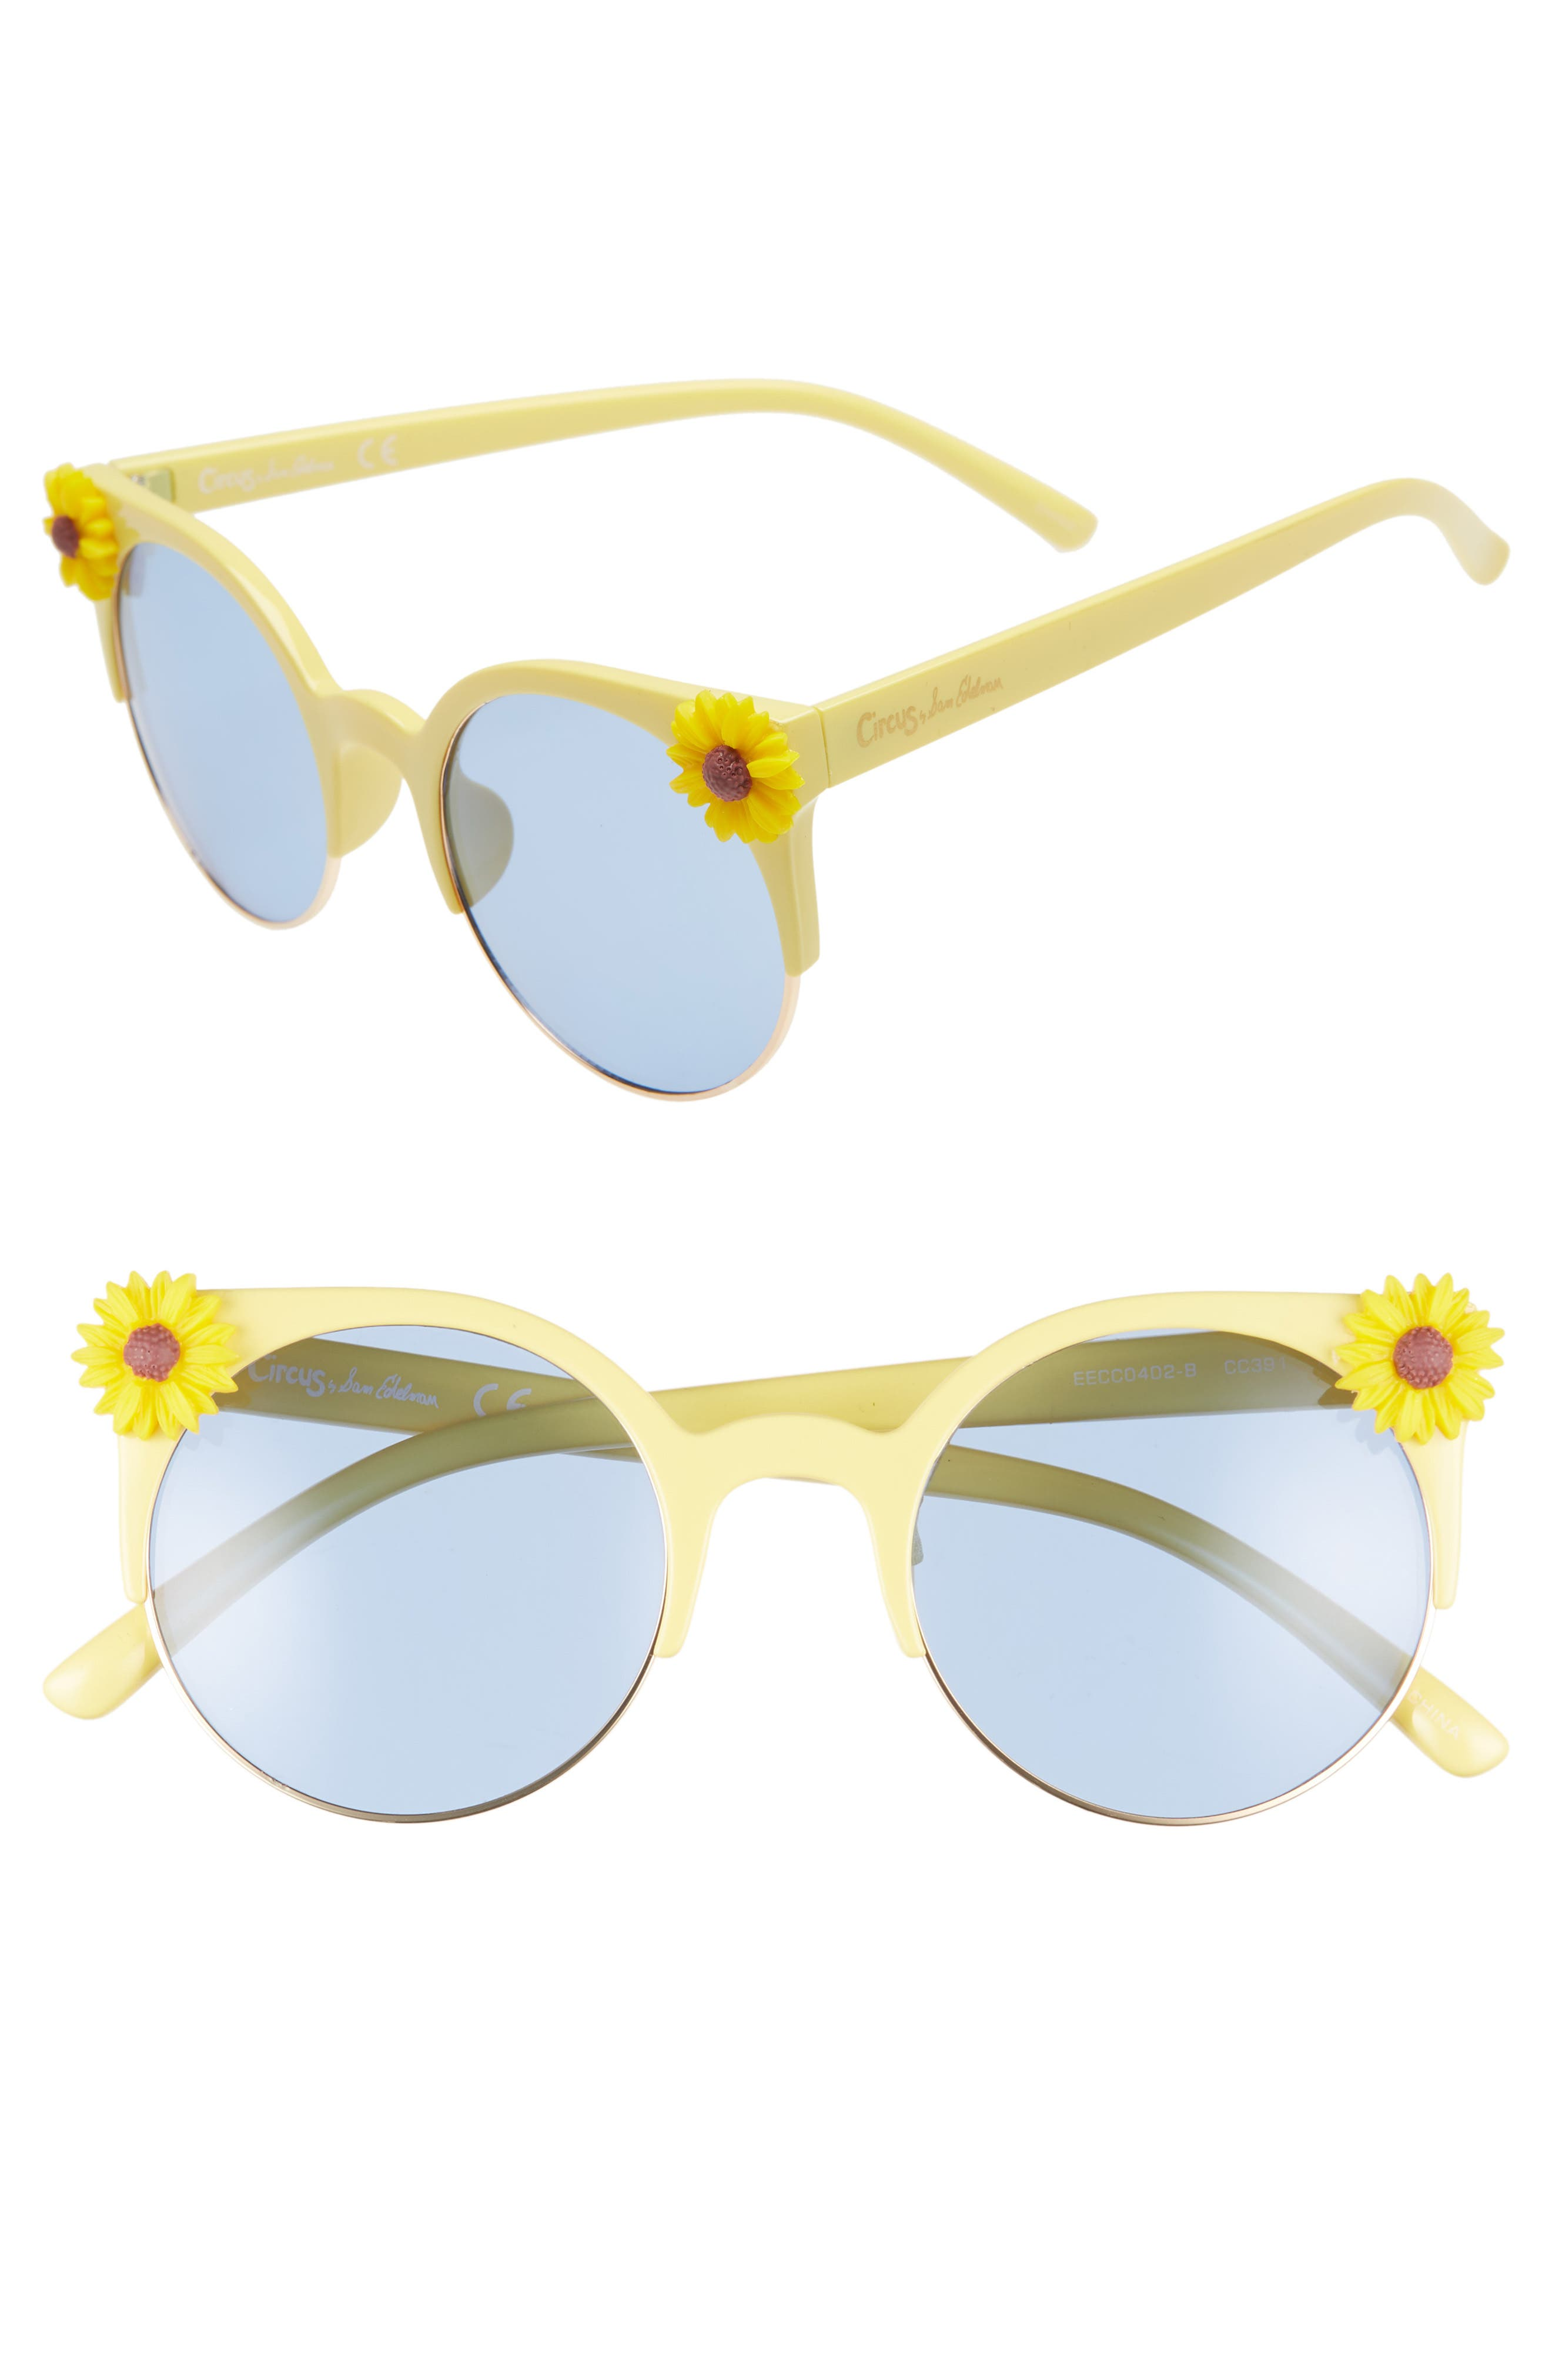 CIRCUS BY SAM EDELMAN 50Mm Daisy Accent Round Sunglasses - Yellow/ Blue Lens